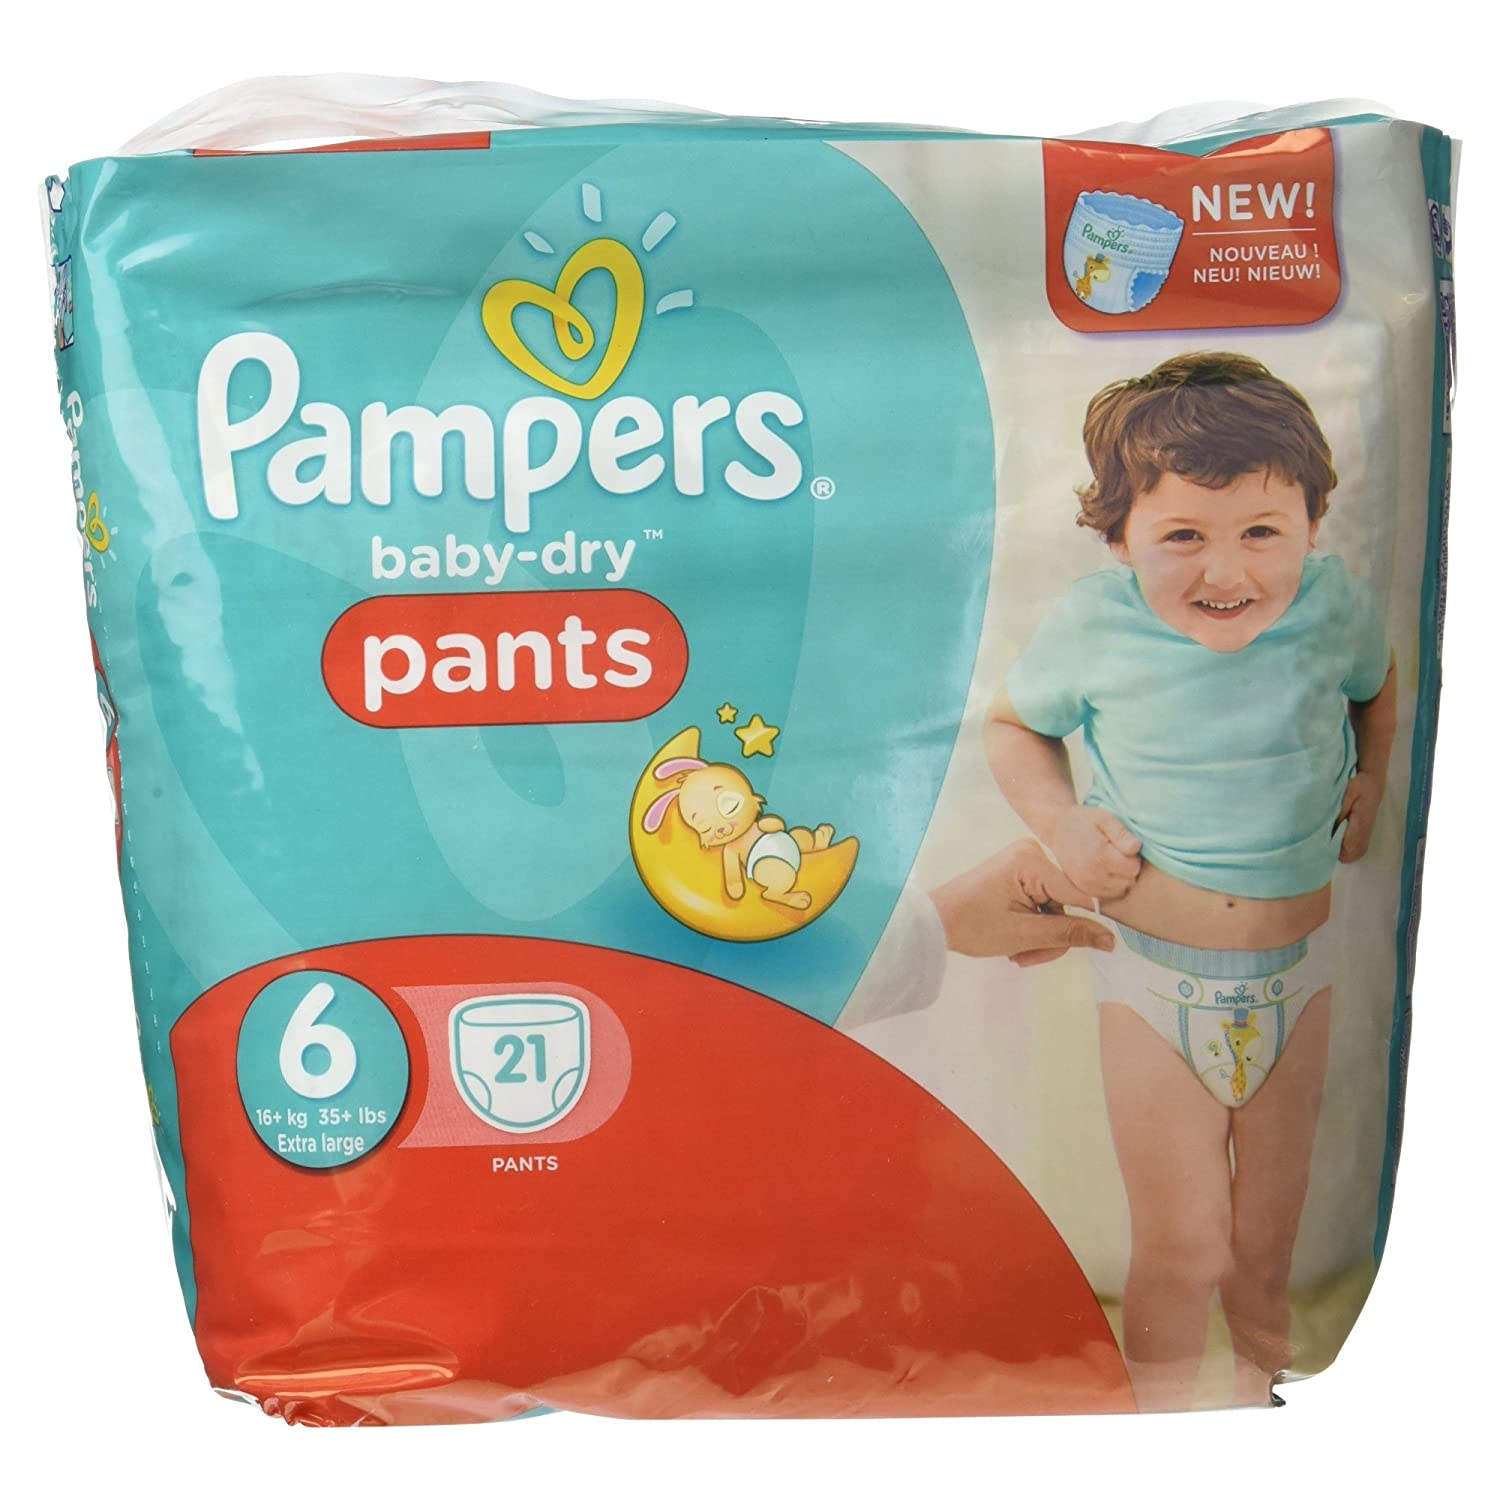 PAMPERS BBC00004516 Baby Dry Pants Culotte d'Apprentissage Jetables Taille 21 6 Pièces